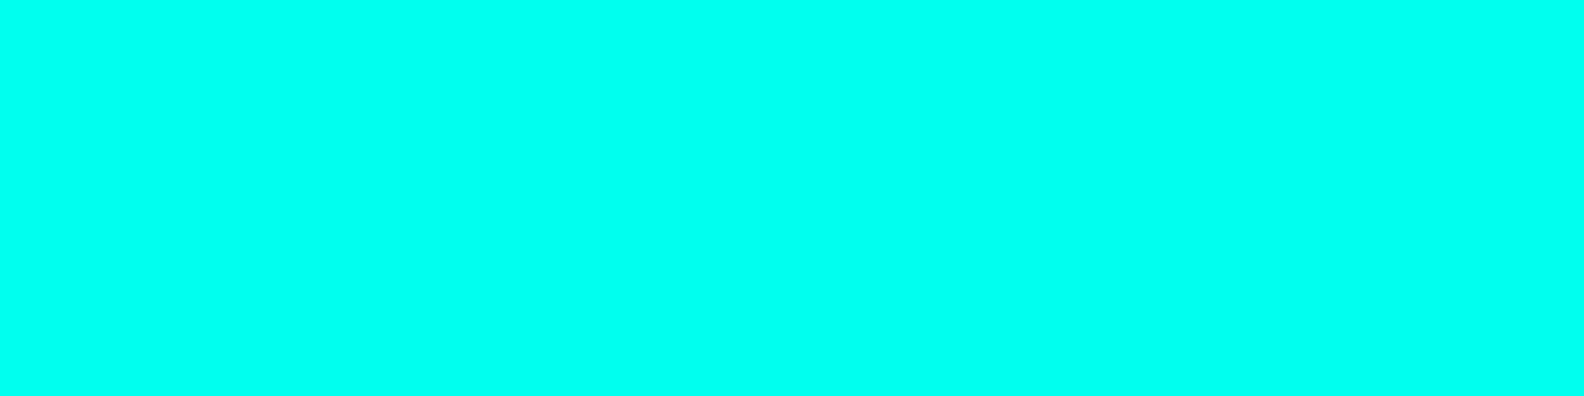 1584x396 Turquoise Blue Solid Color Background